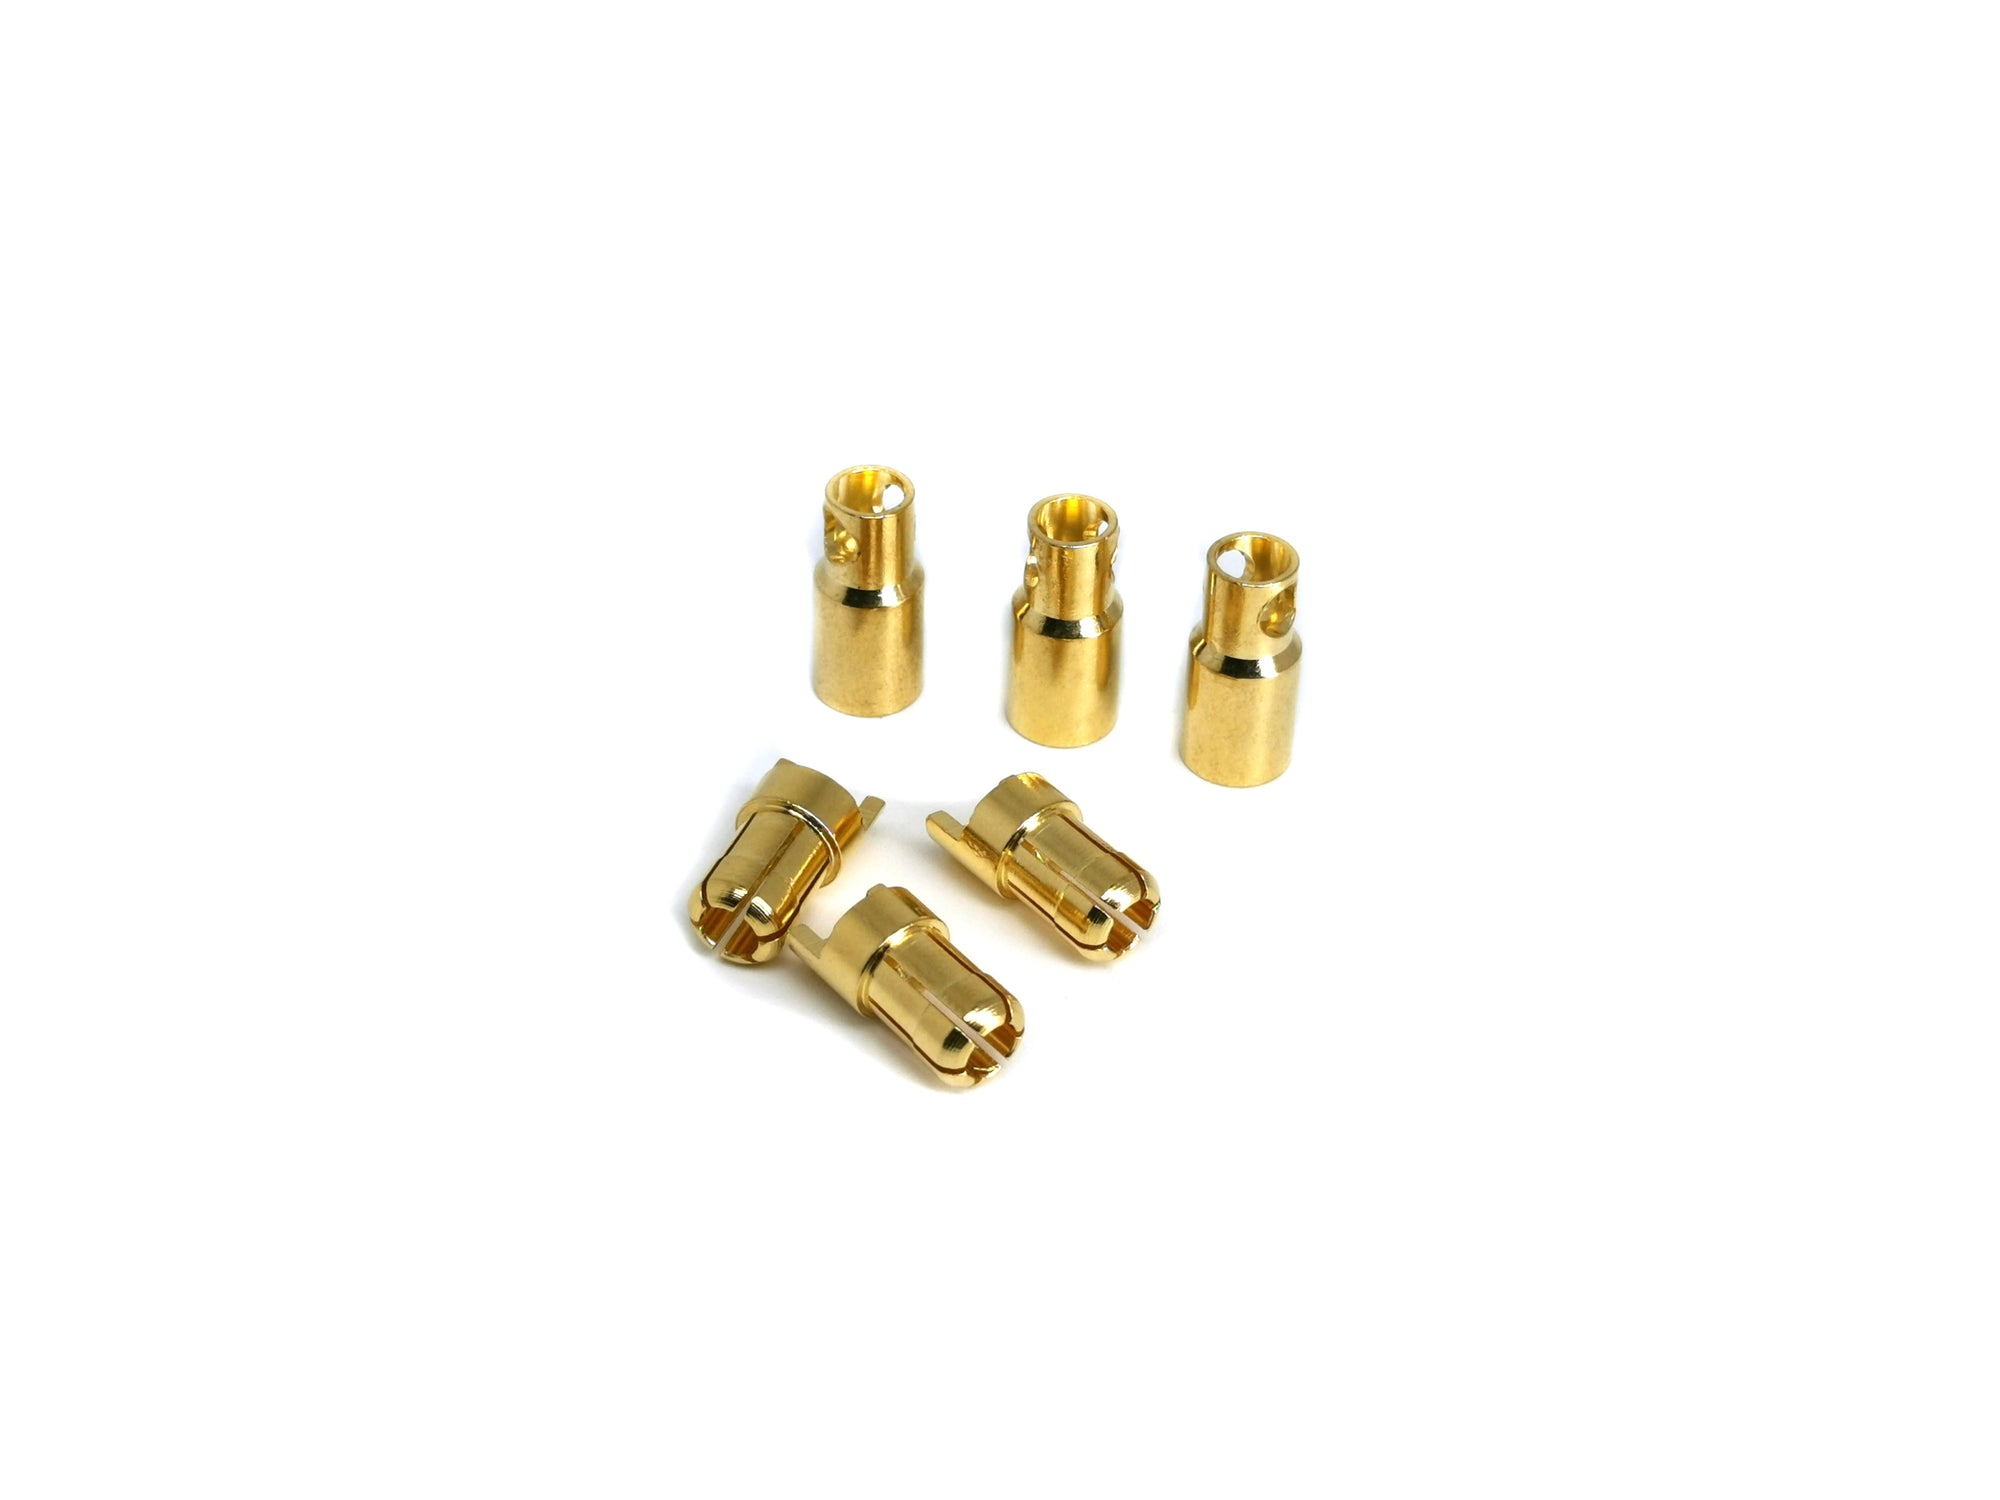 6.0MM  Bullet connector    3 pairs  Price